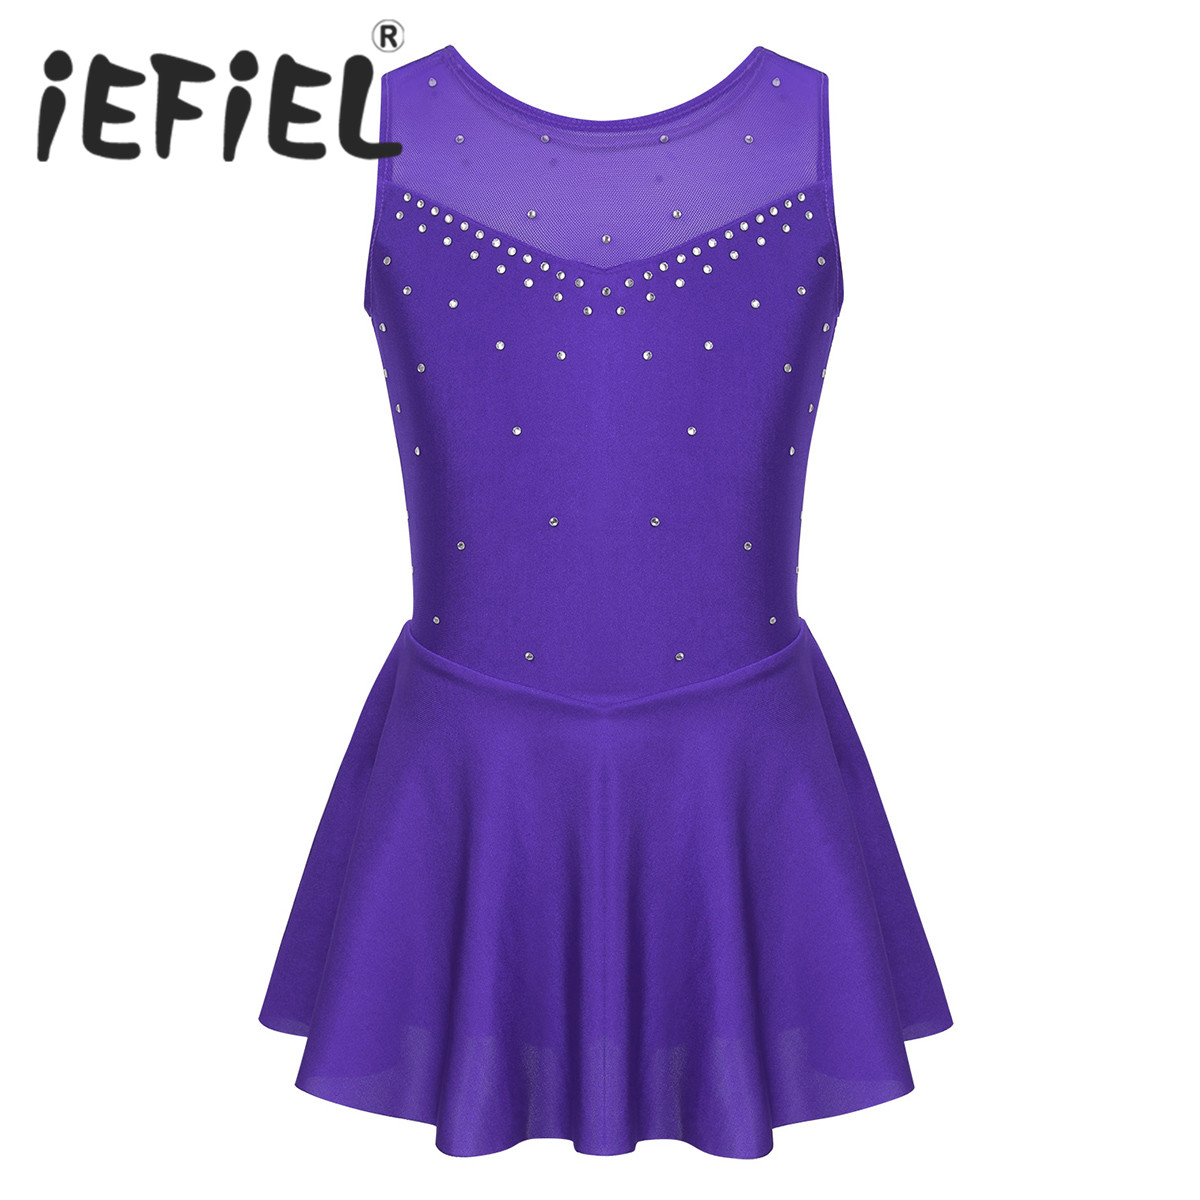 TiaoBug Figure Skating Short Skirt for Women Training Dress Gymnastics Ice Skating Chiffon Skirt